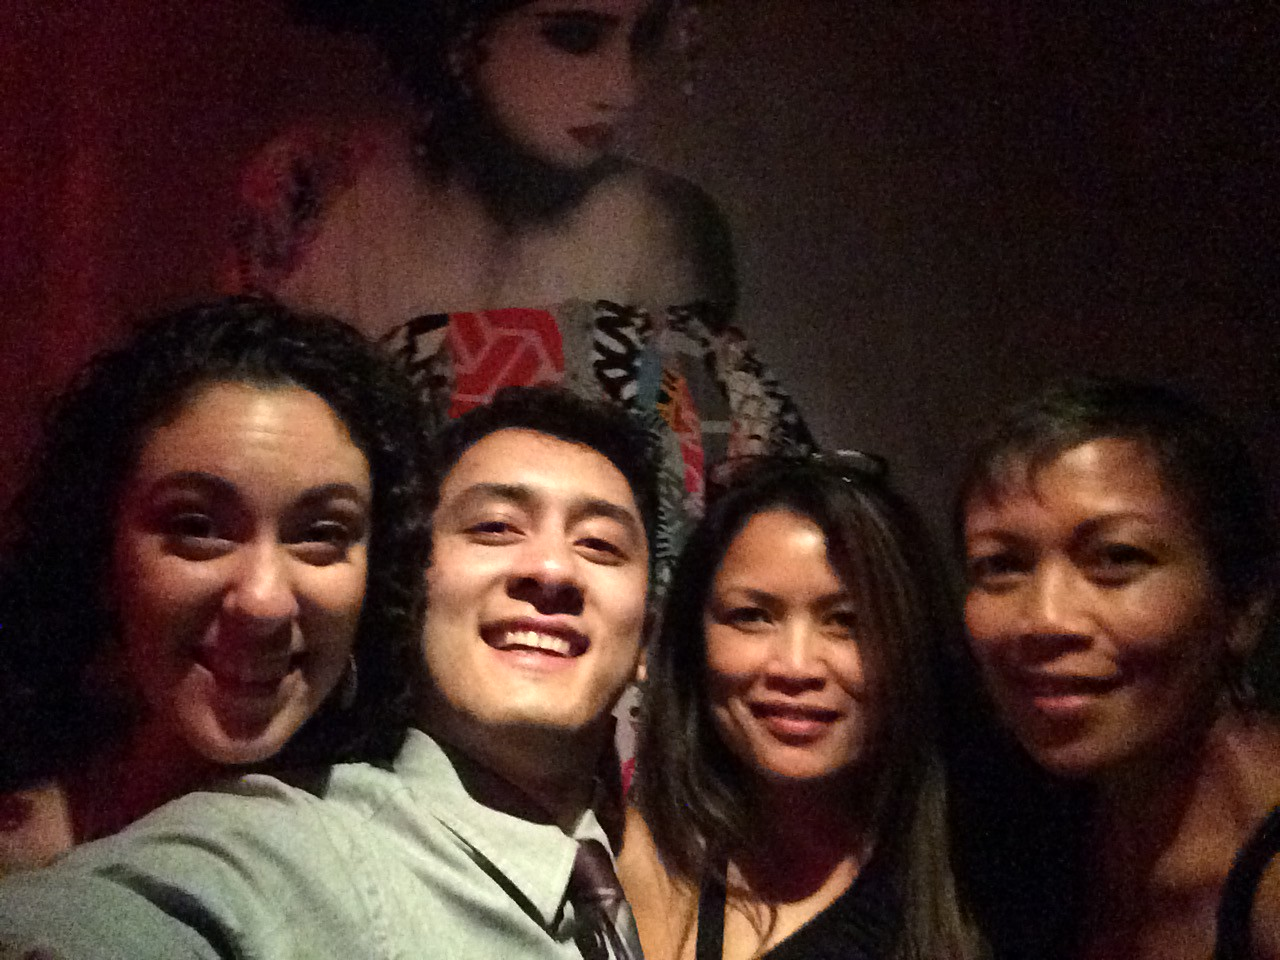 Selfie @Tao, Downtown with wall art in the back!